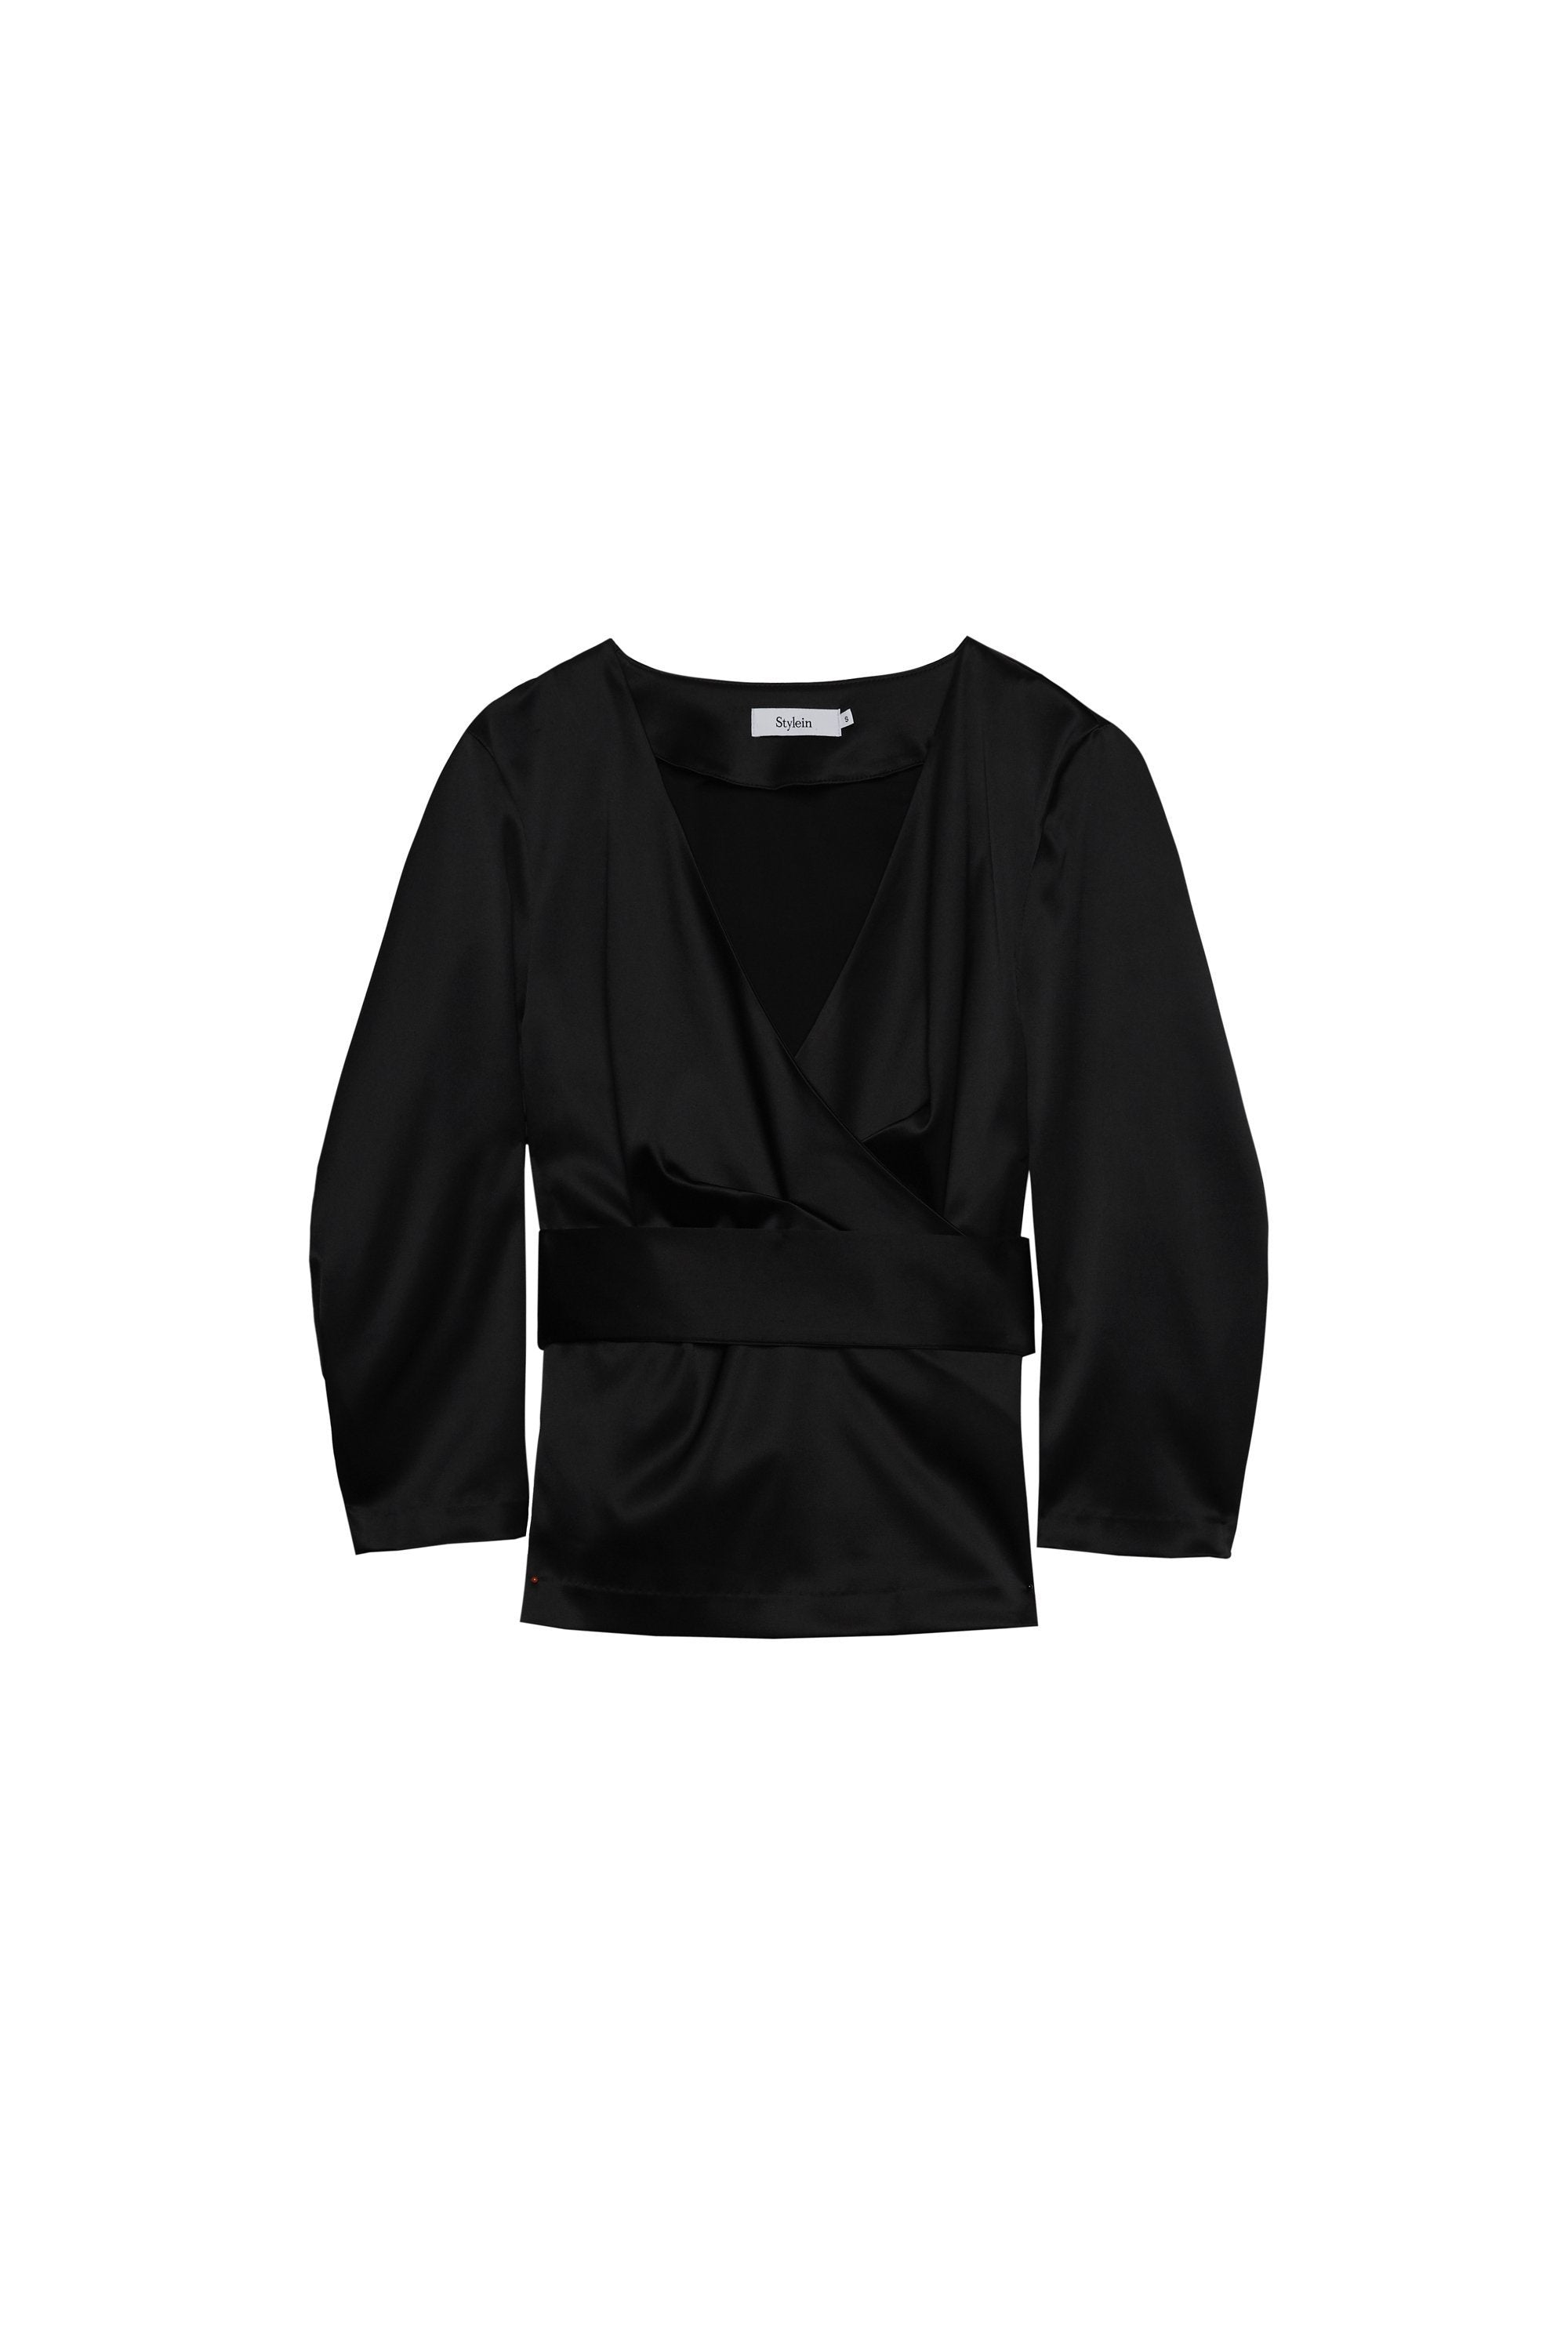 BASTILLE BLOUSE - BLACK SATIN Top Stylein